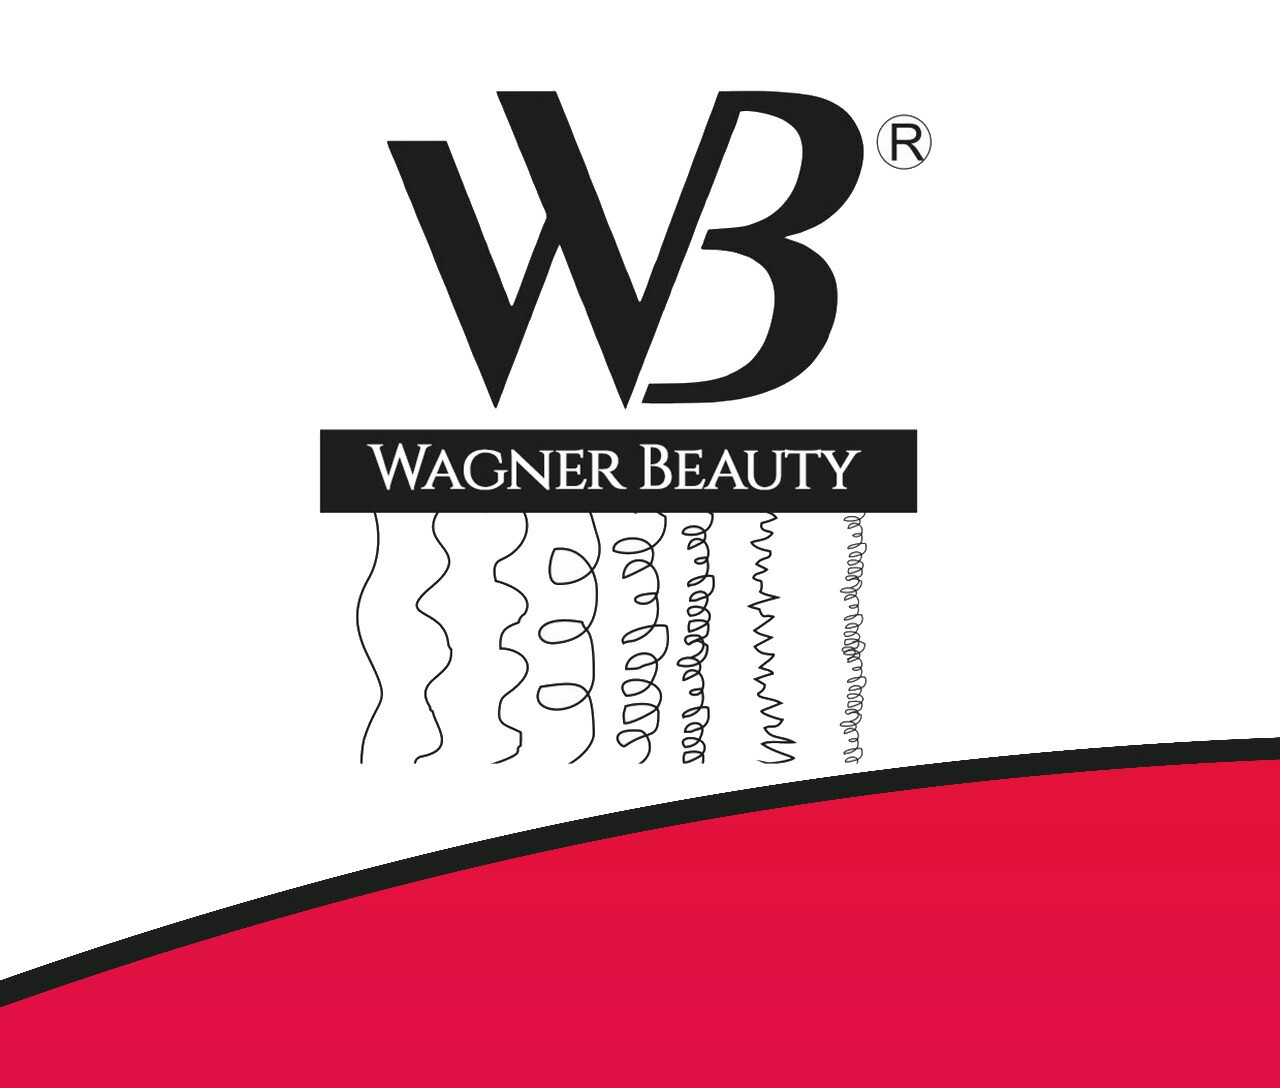 Wagner Beauty